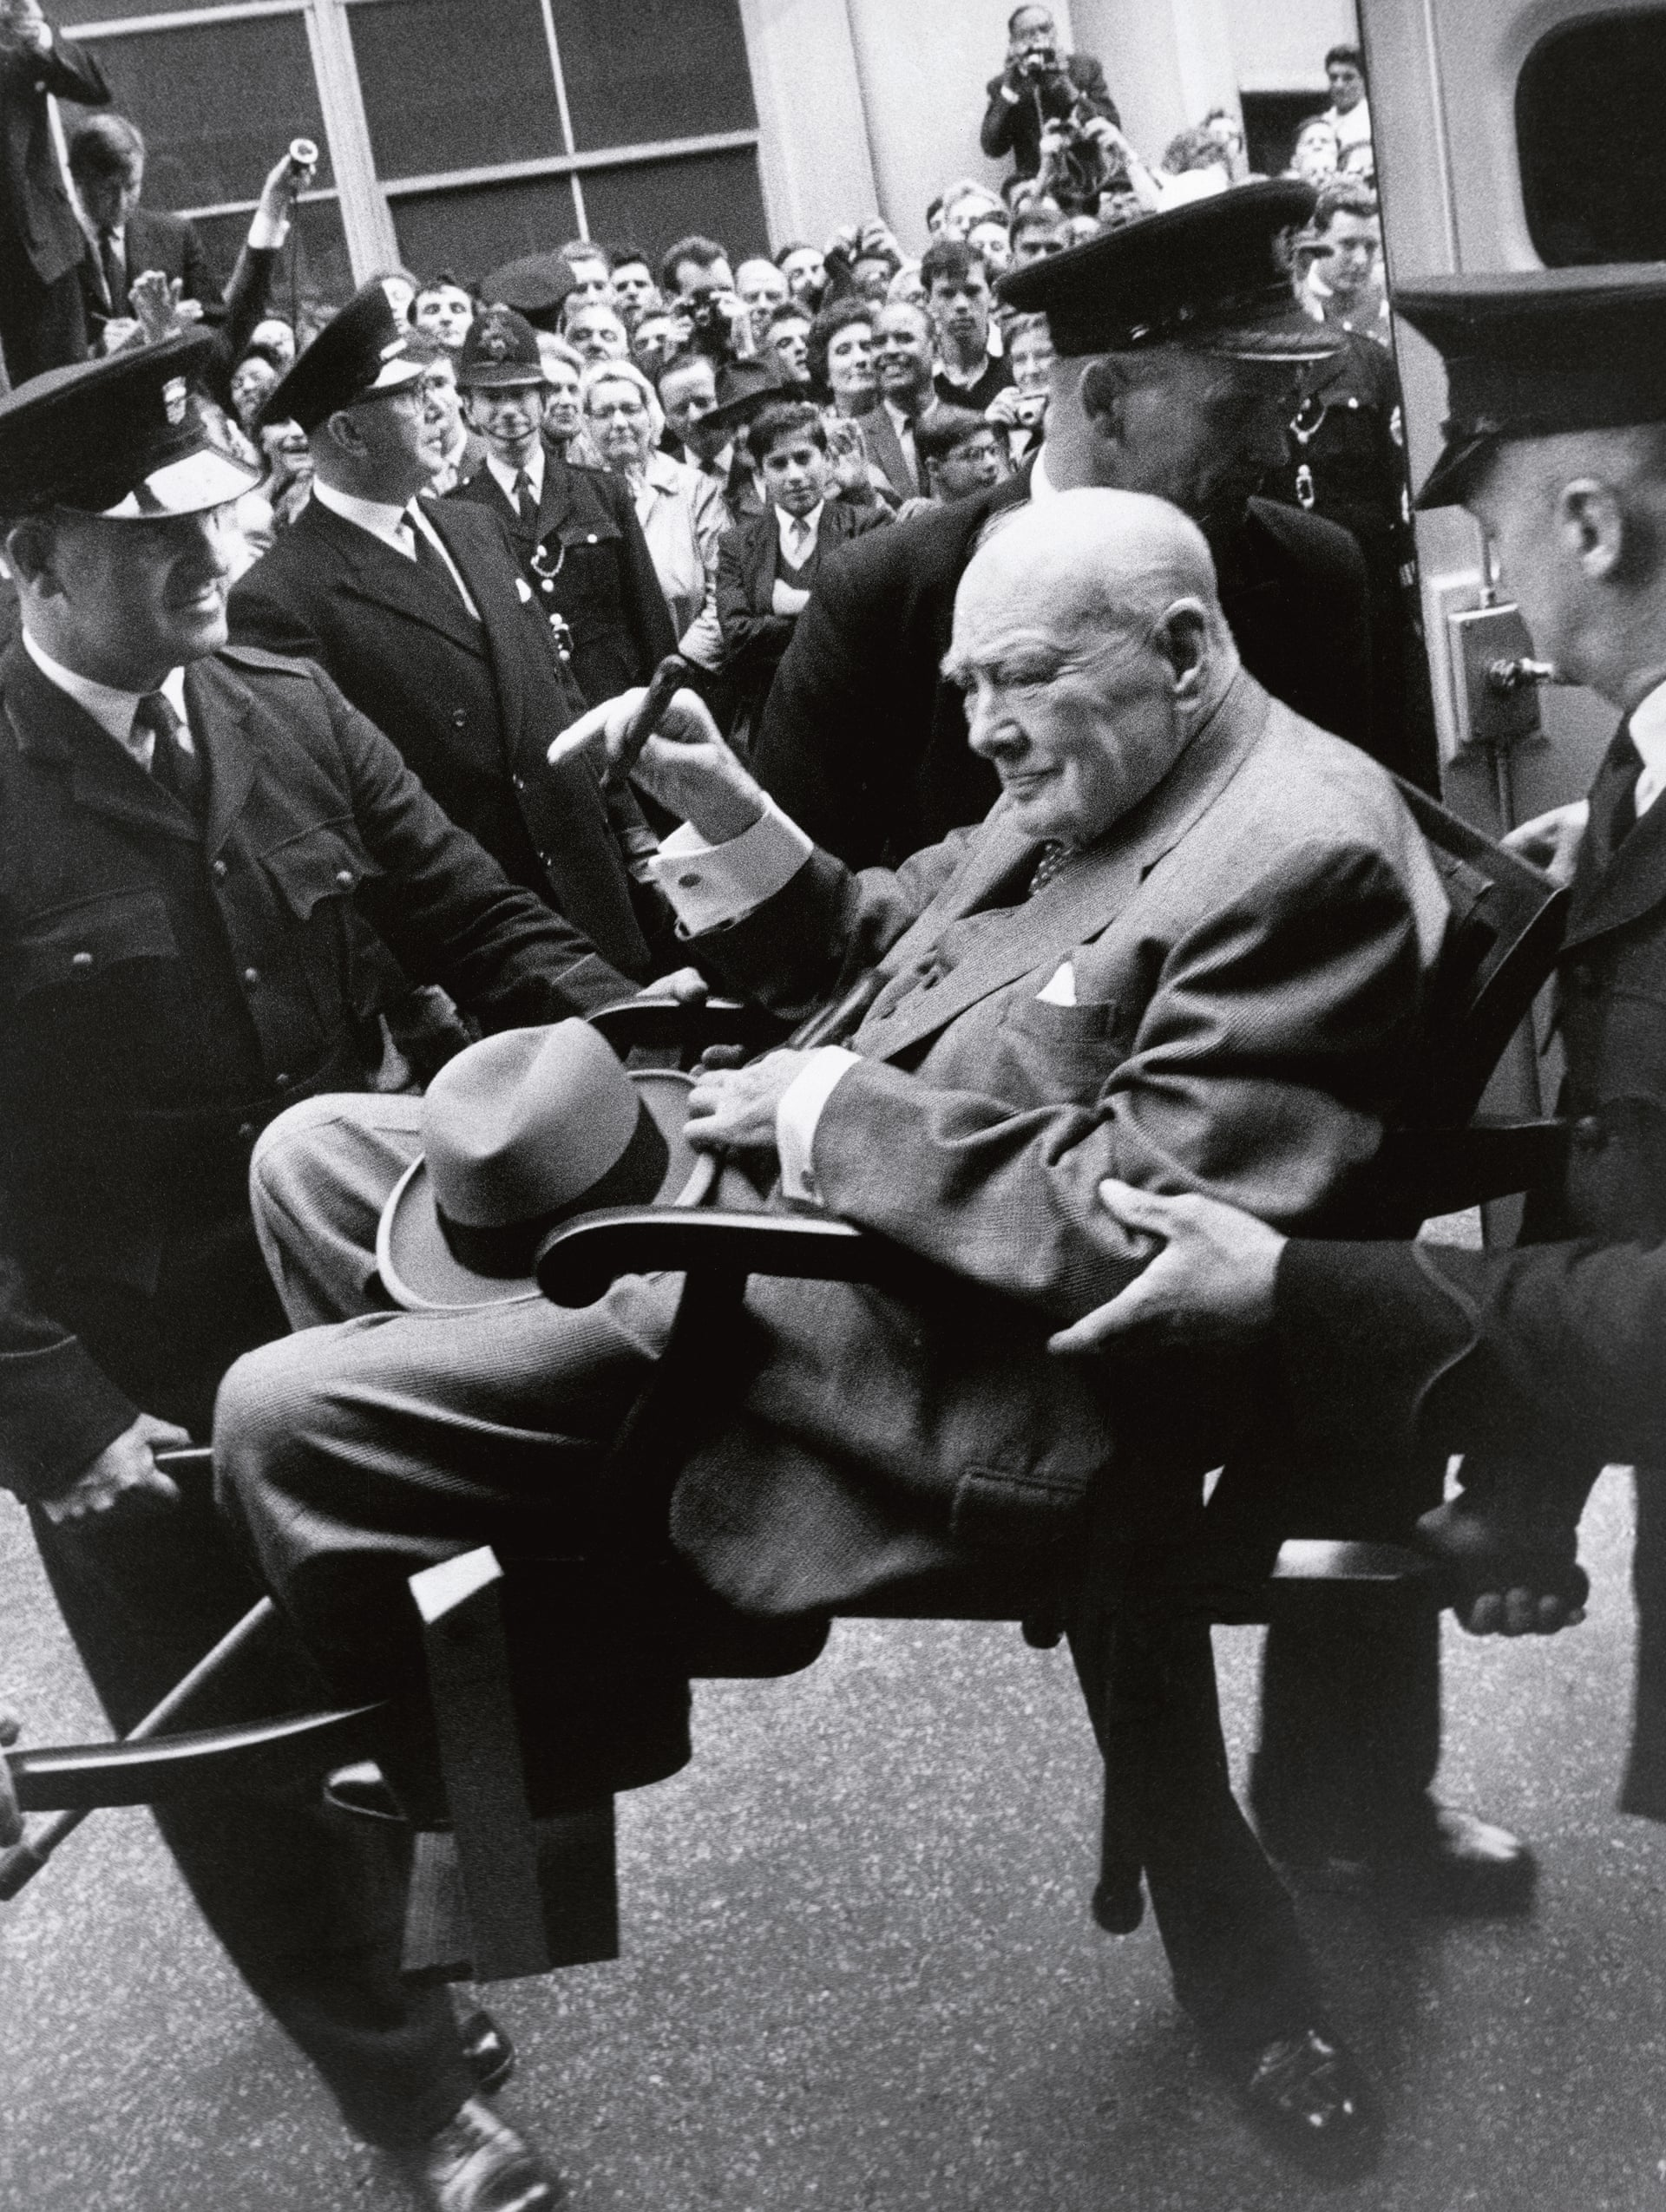 Terry O'Neil's image of Winston Churchill after being discharged from hospital